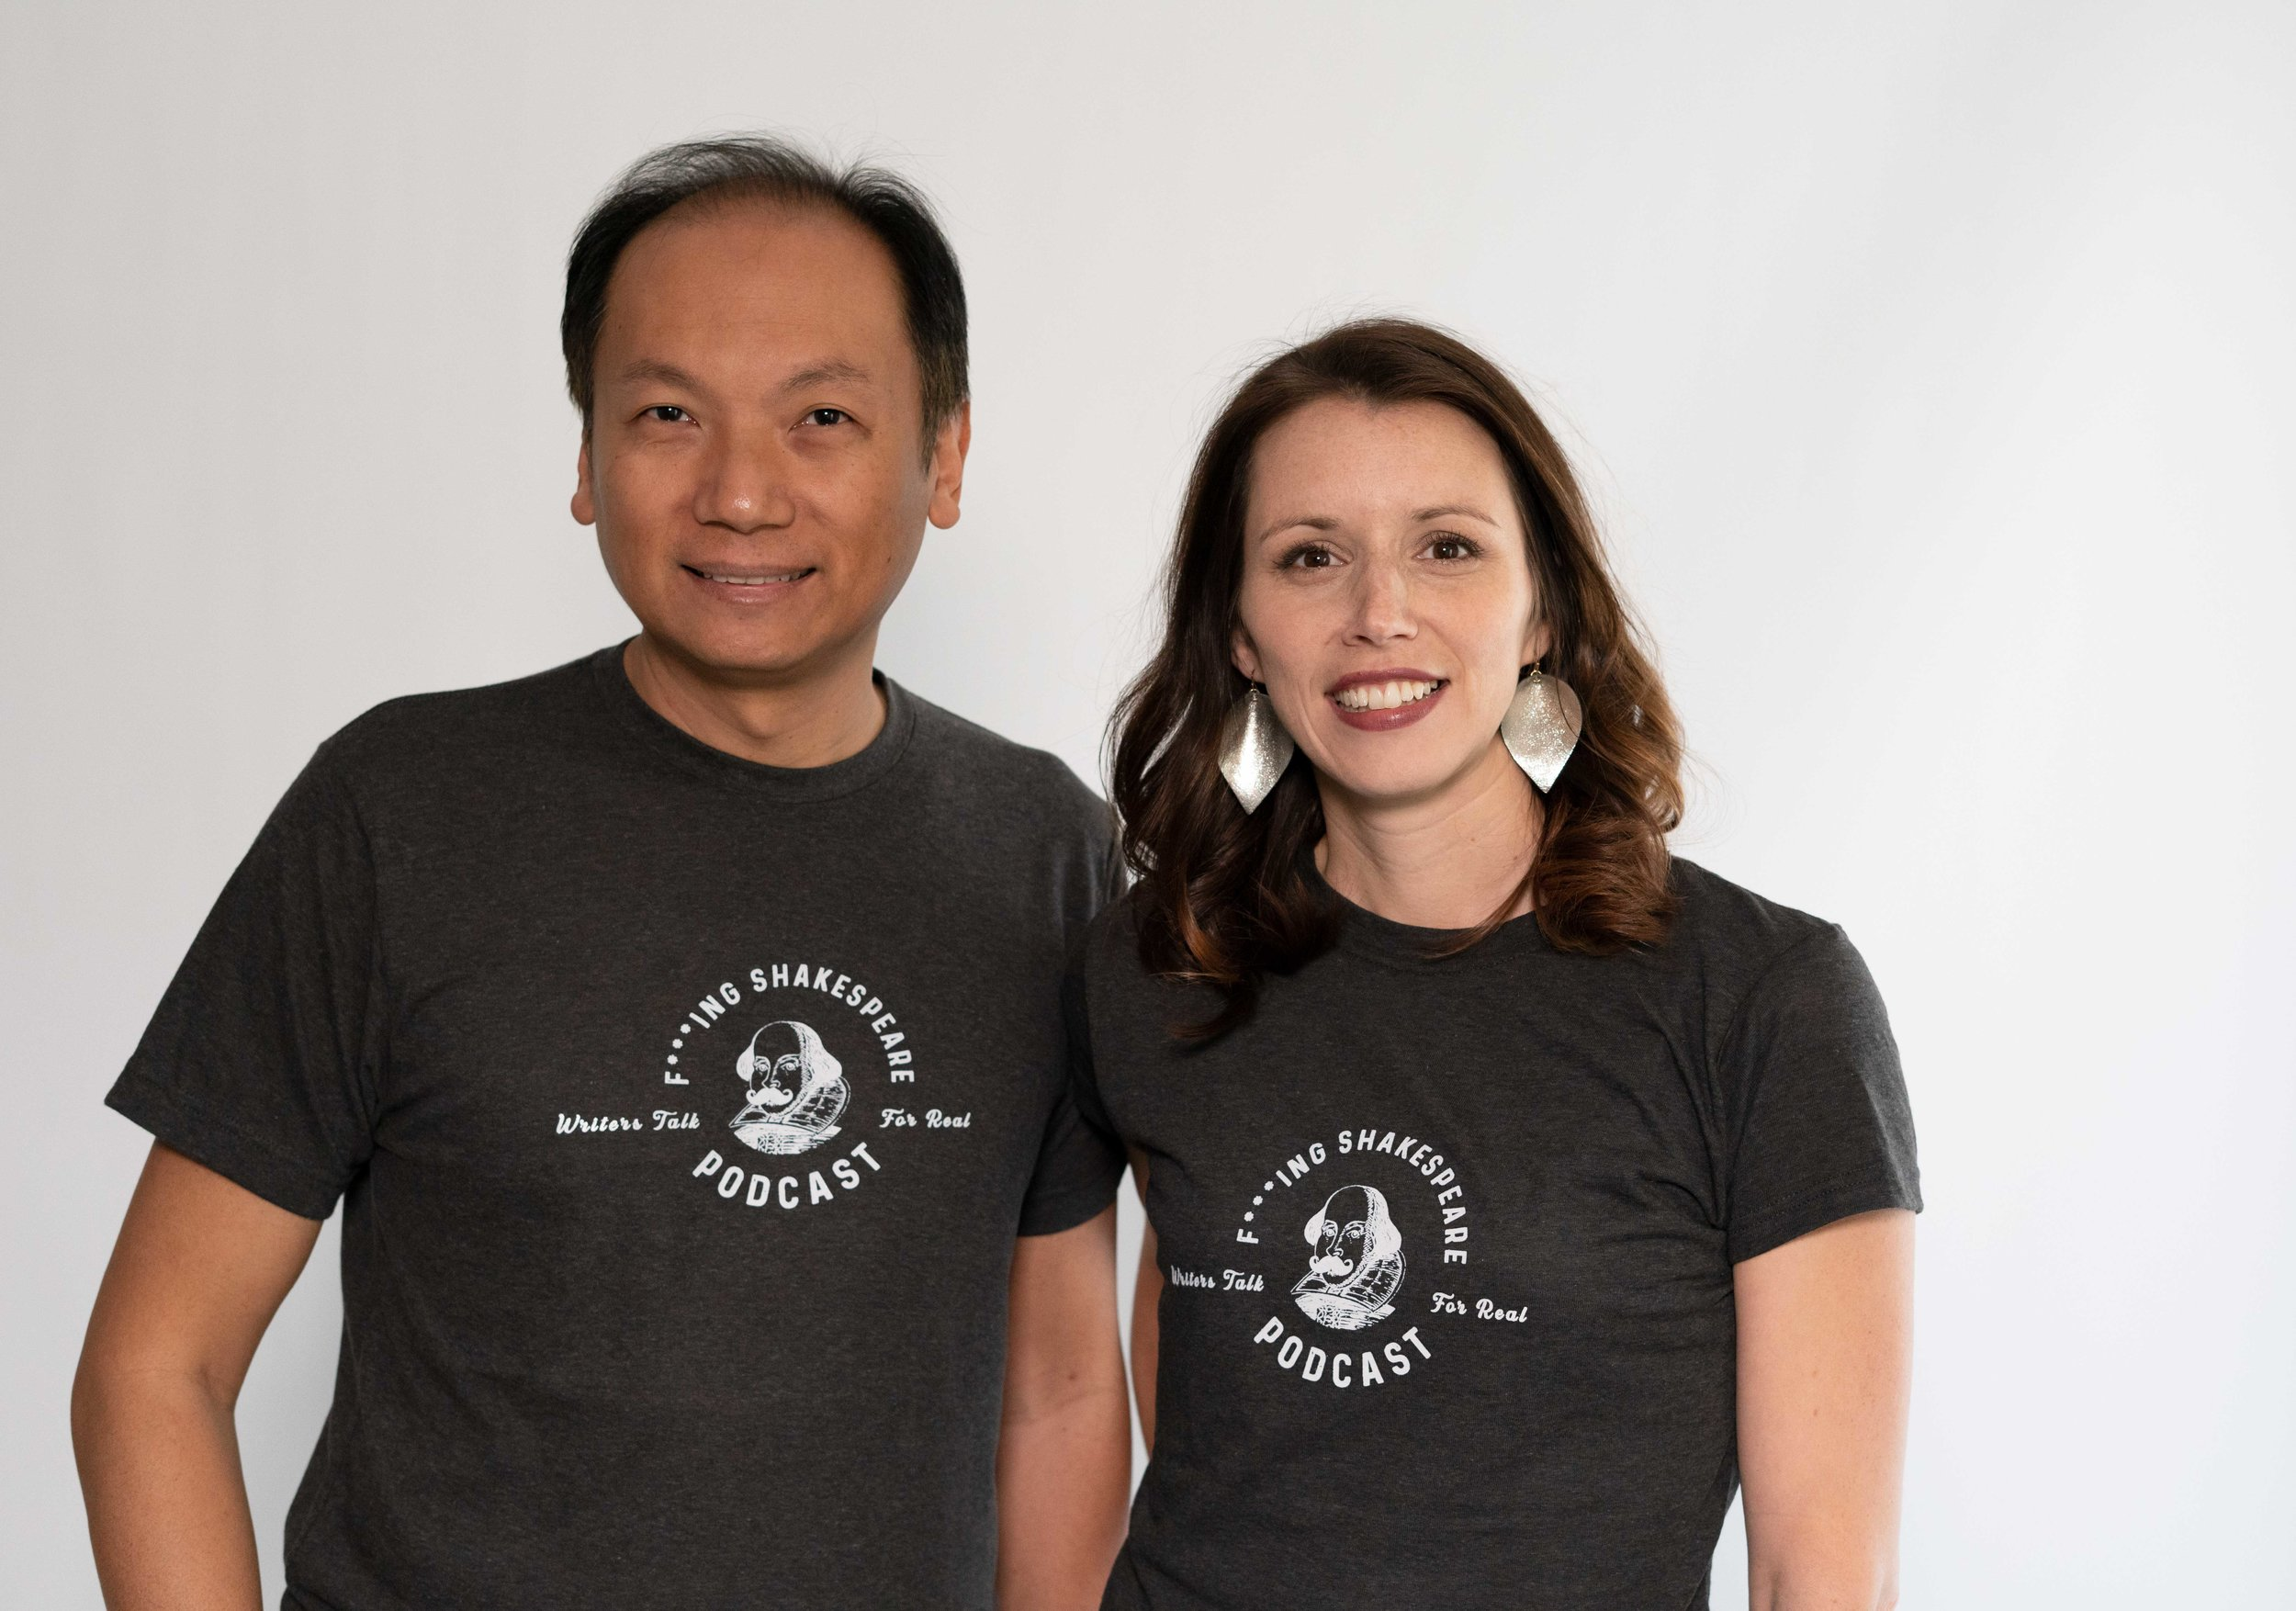 F***ing Shakespeare co-hosts, Phuc & Kate, sporting the new shirts!